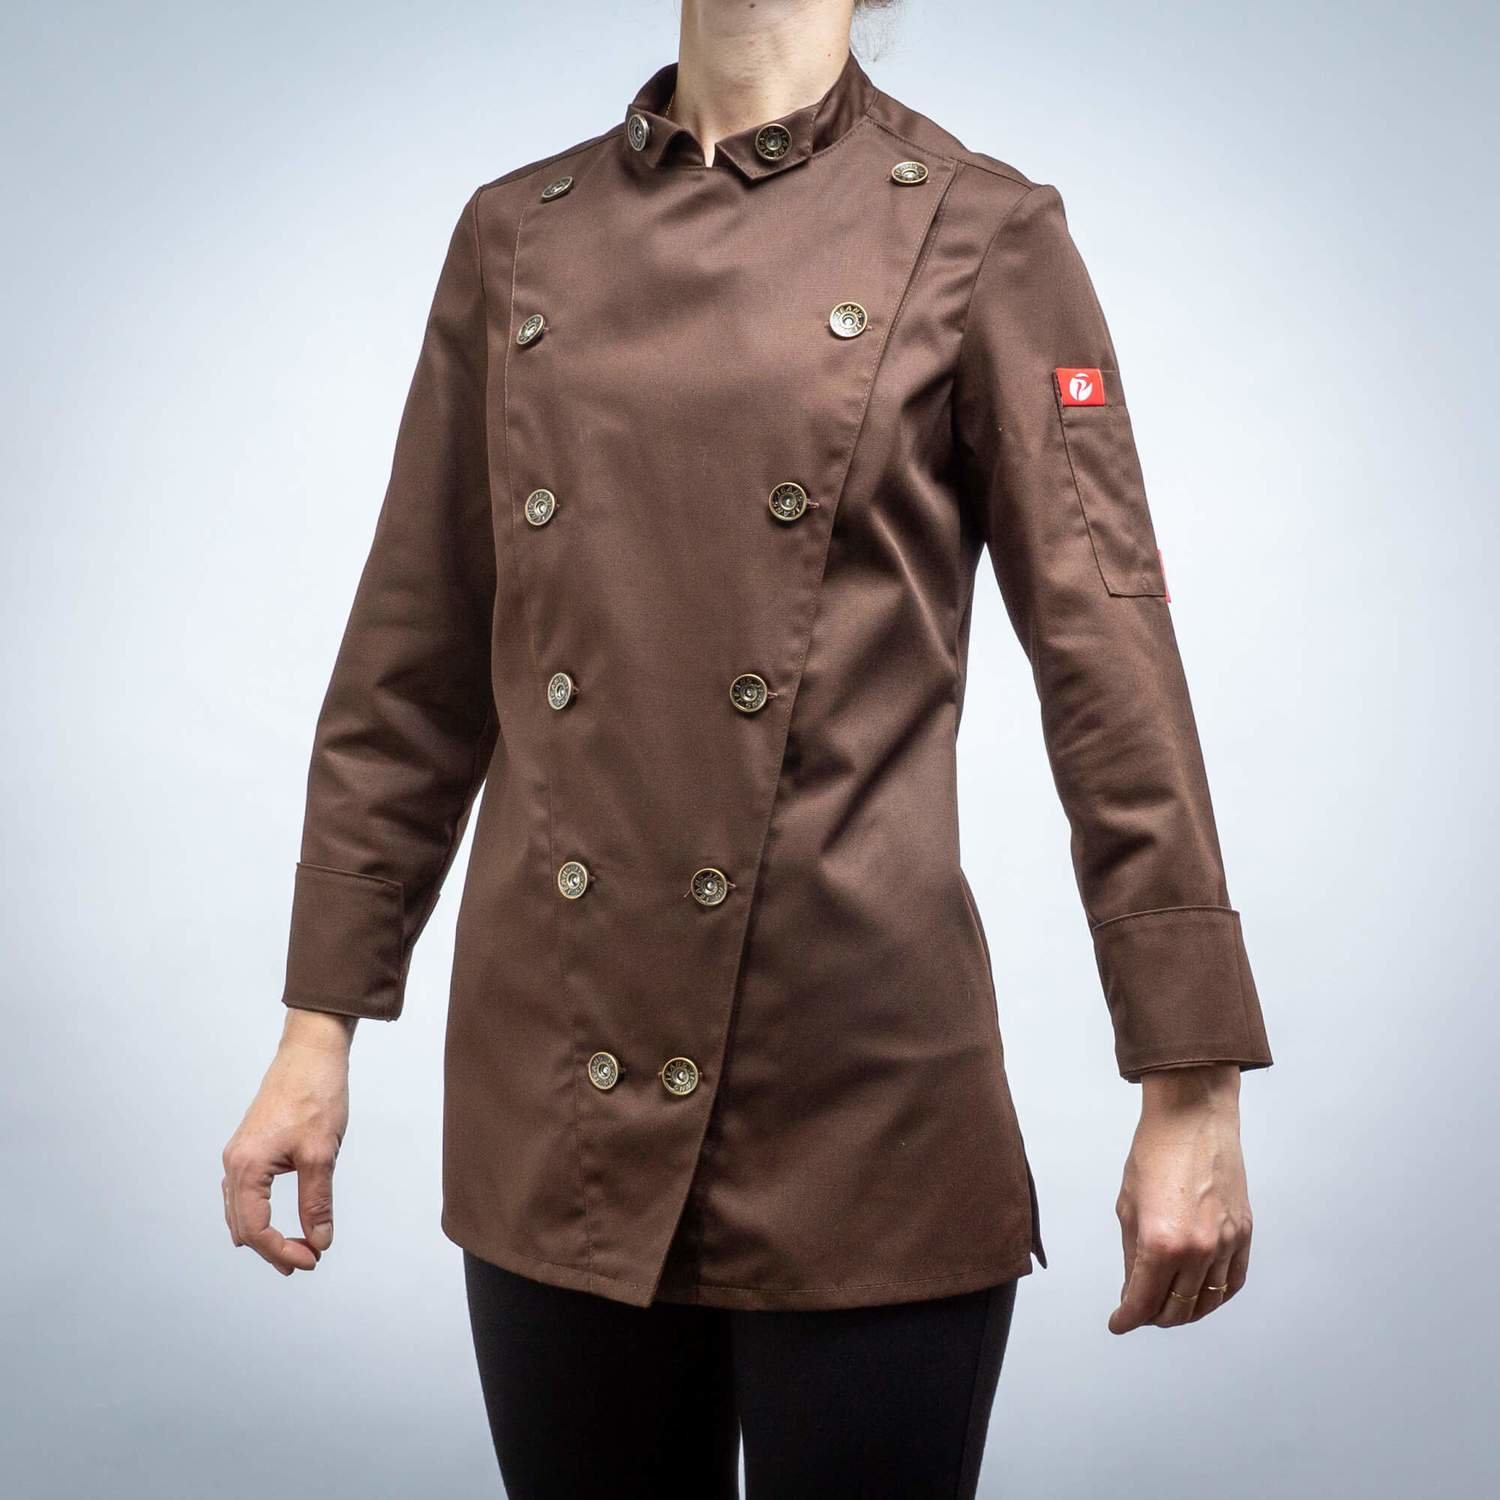 622BISTRE - CHEF'S JACKET